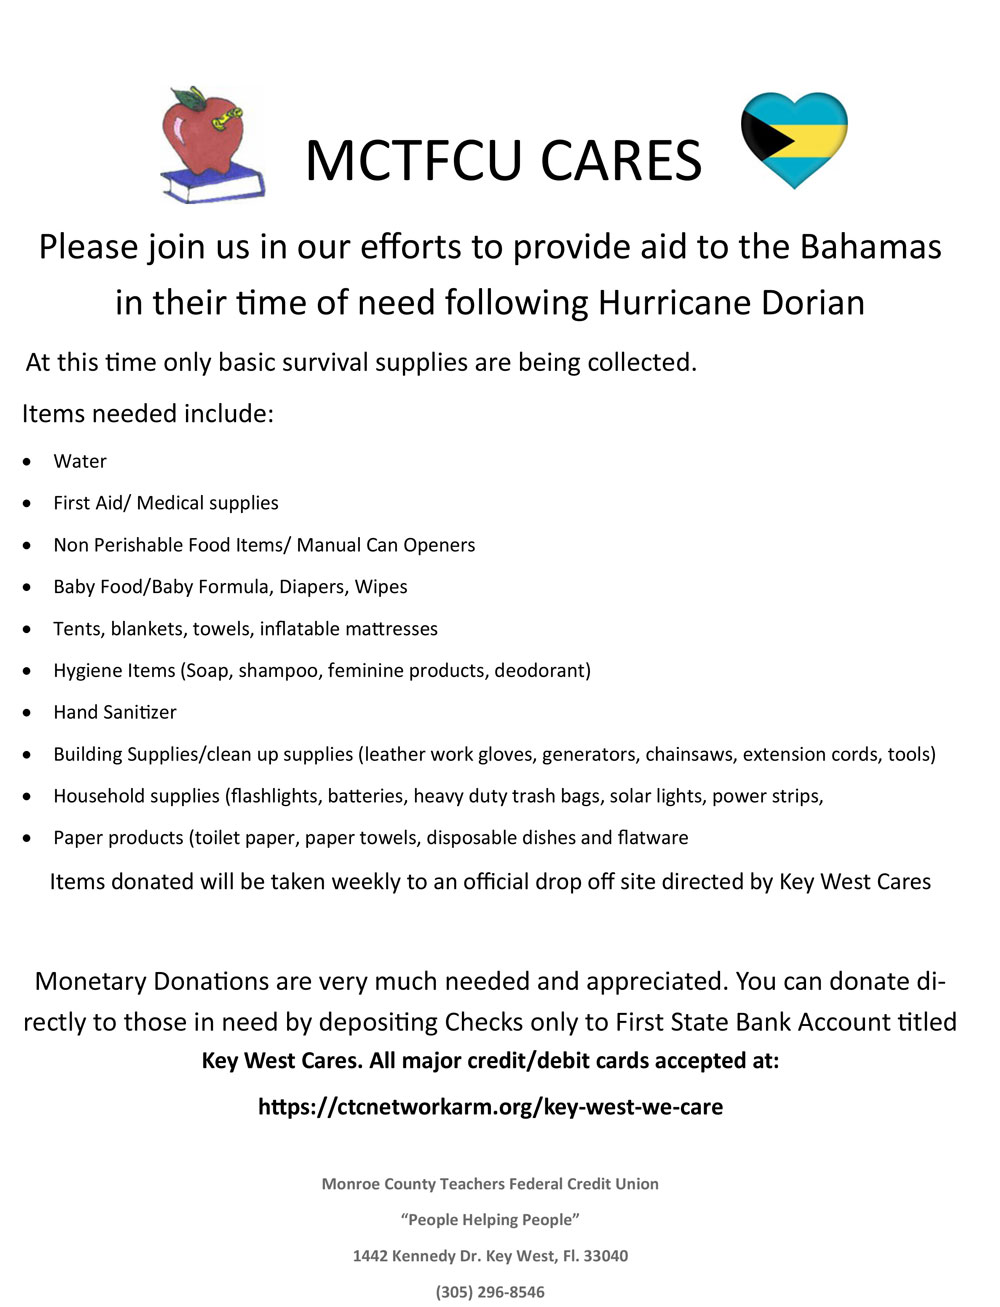 Please join us in our efforts to provide aid to the Bahamas in their time of need